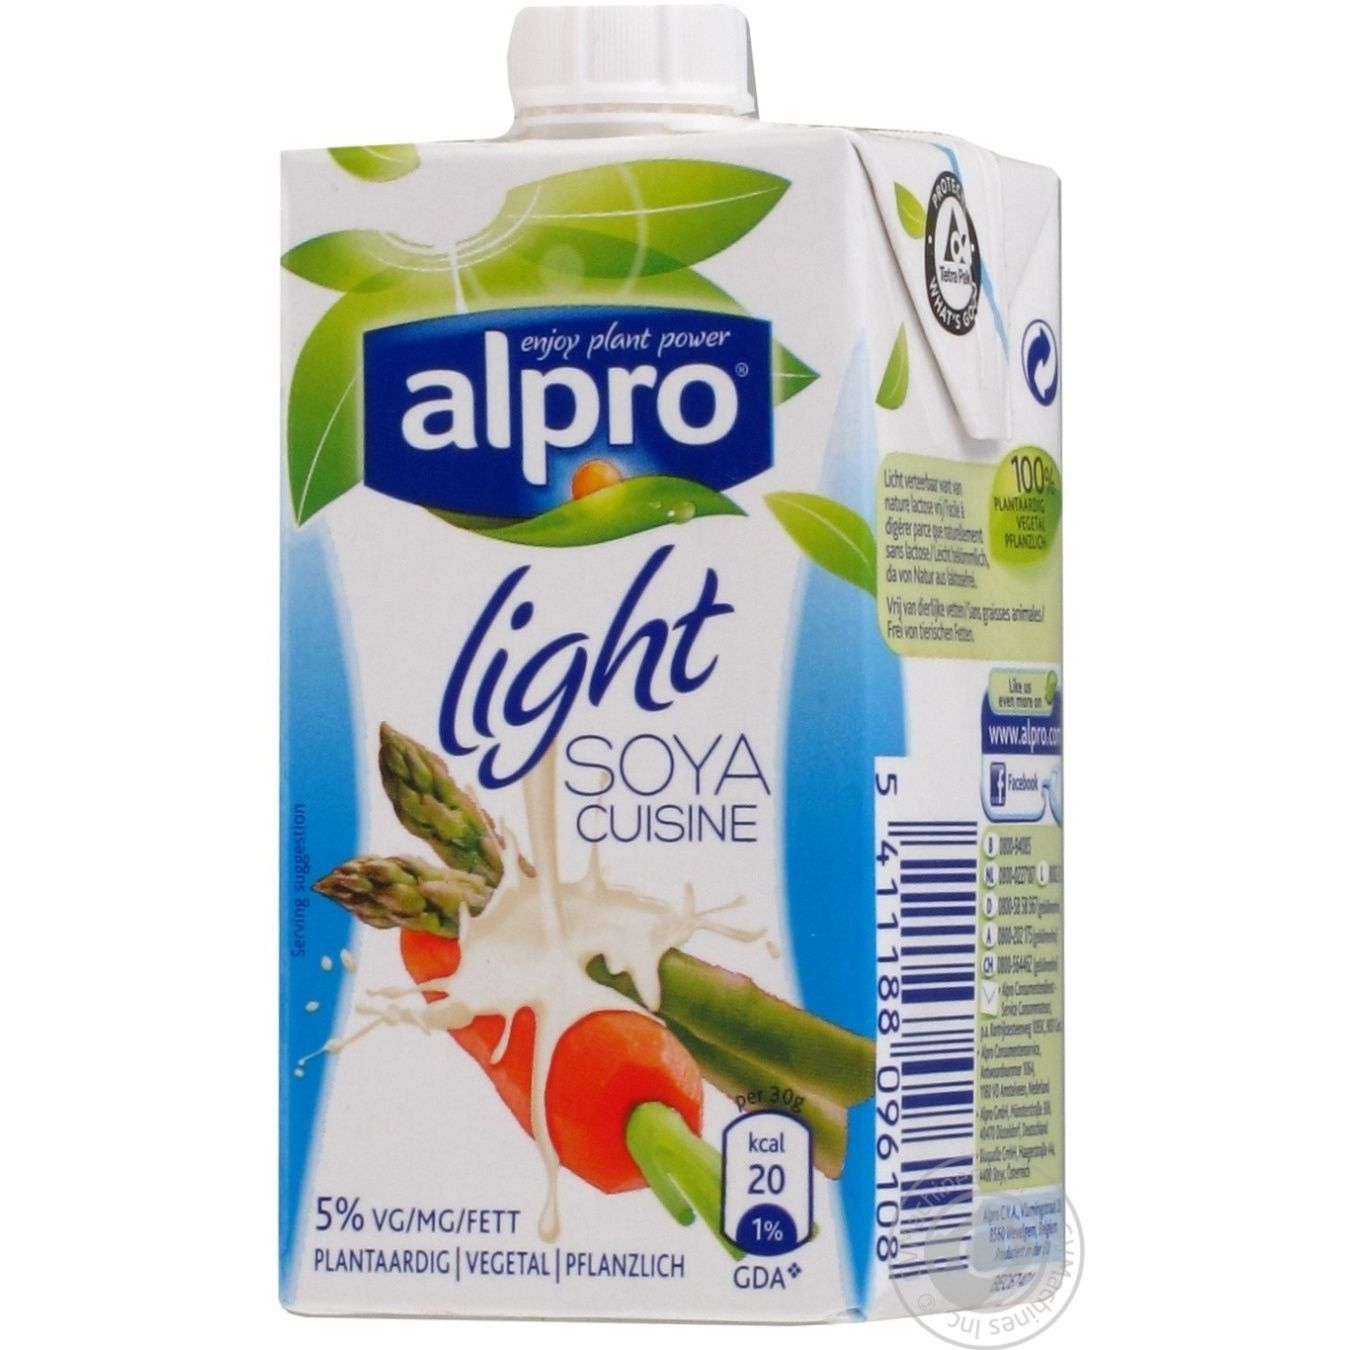 Cream substitute alpro light soya lactose free 250g for Alpro soya cuisine light